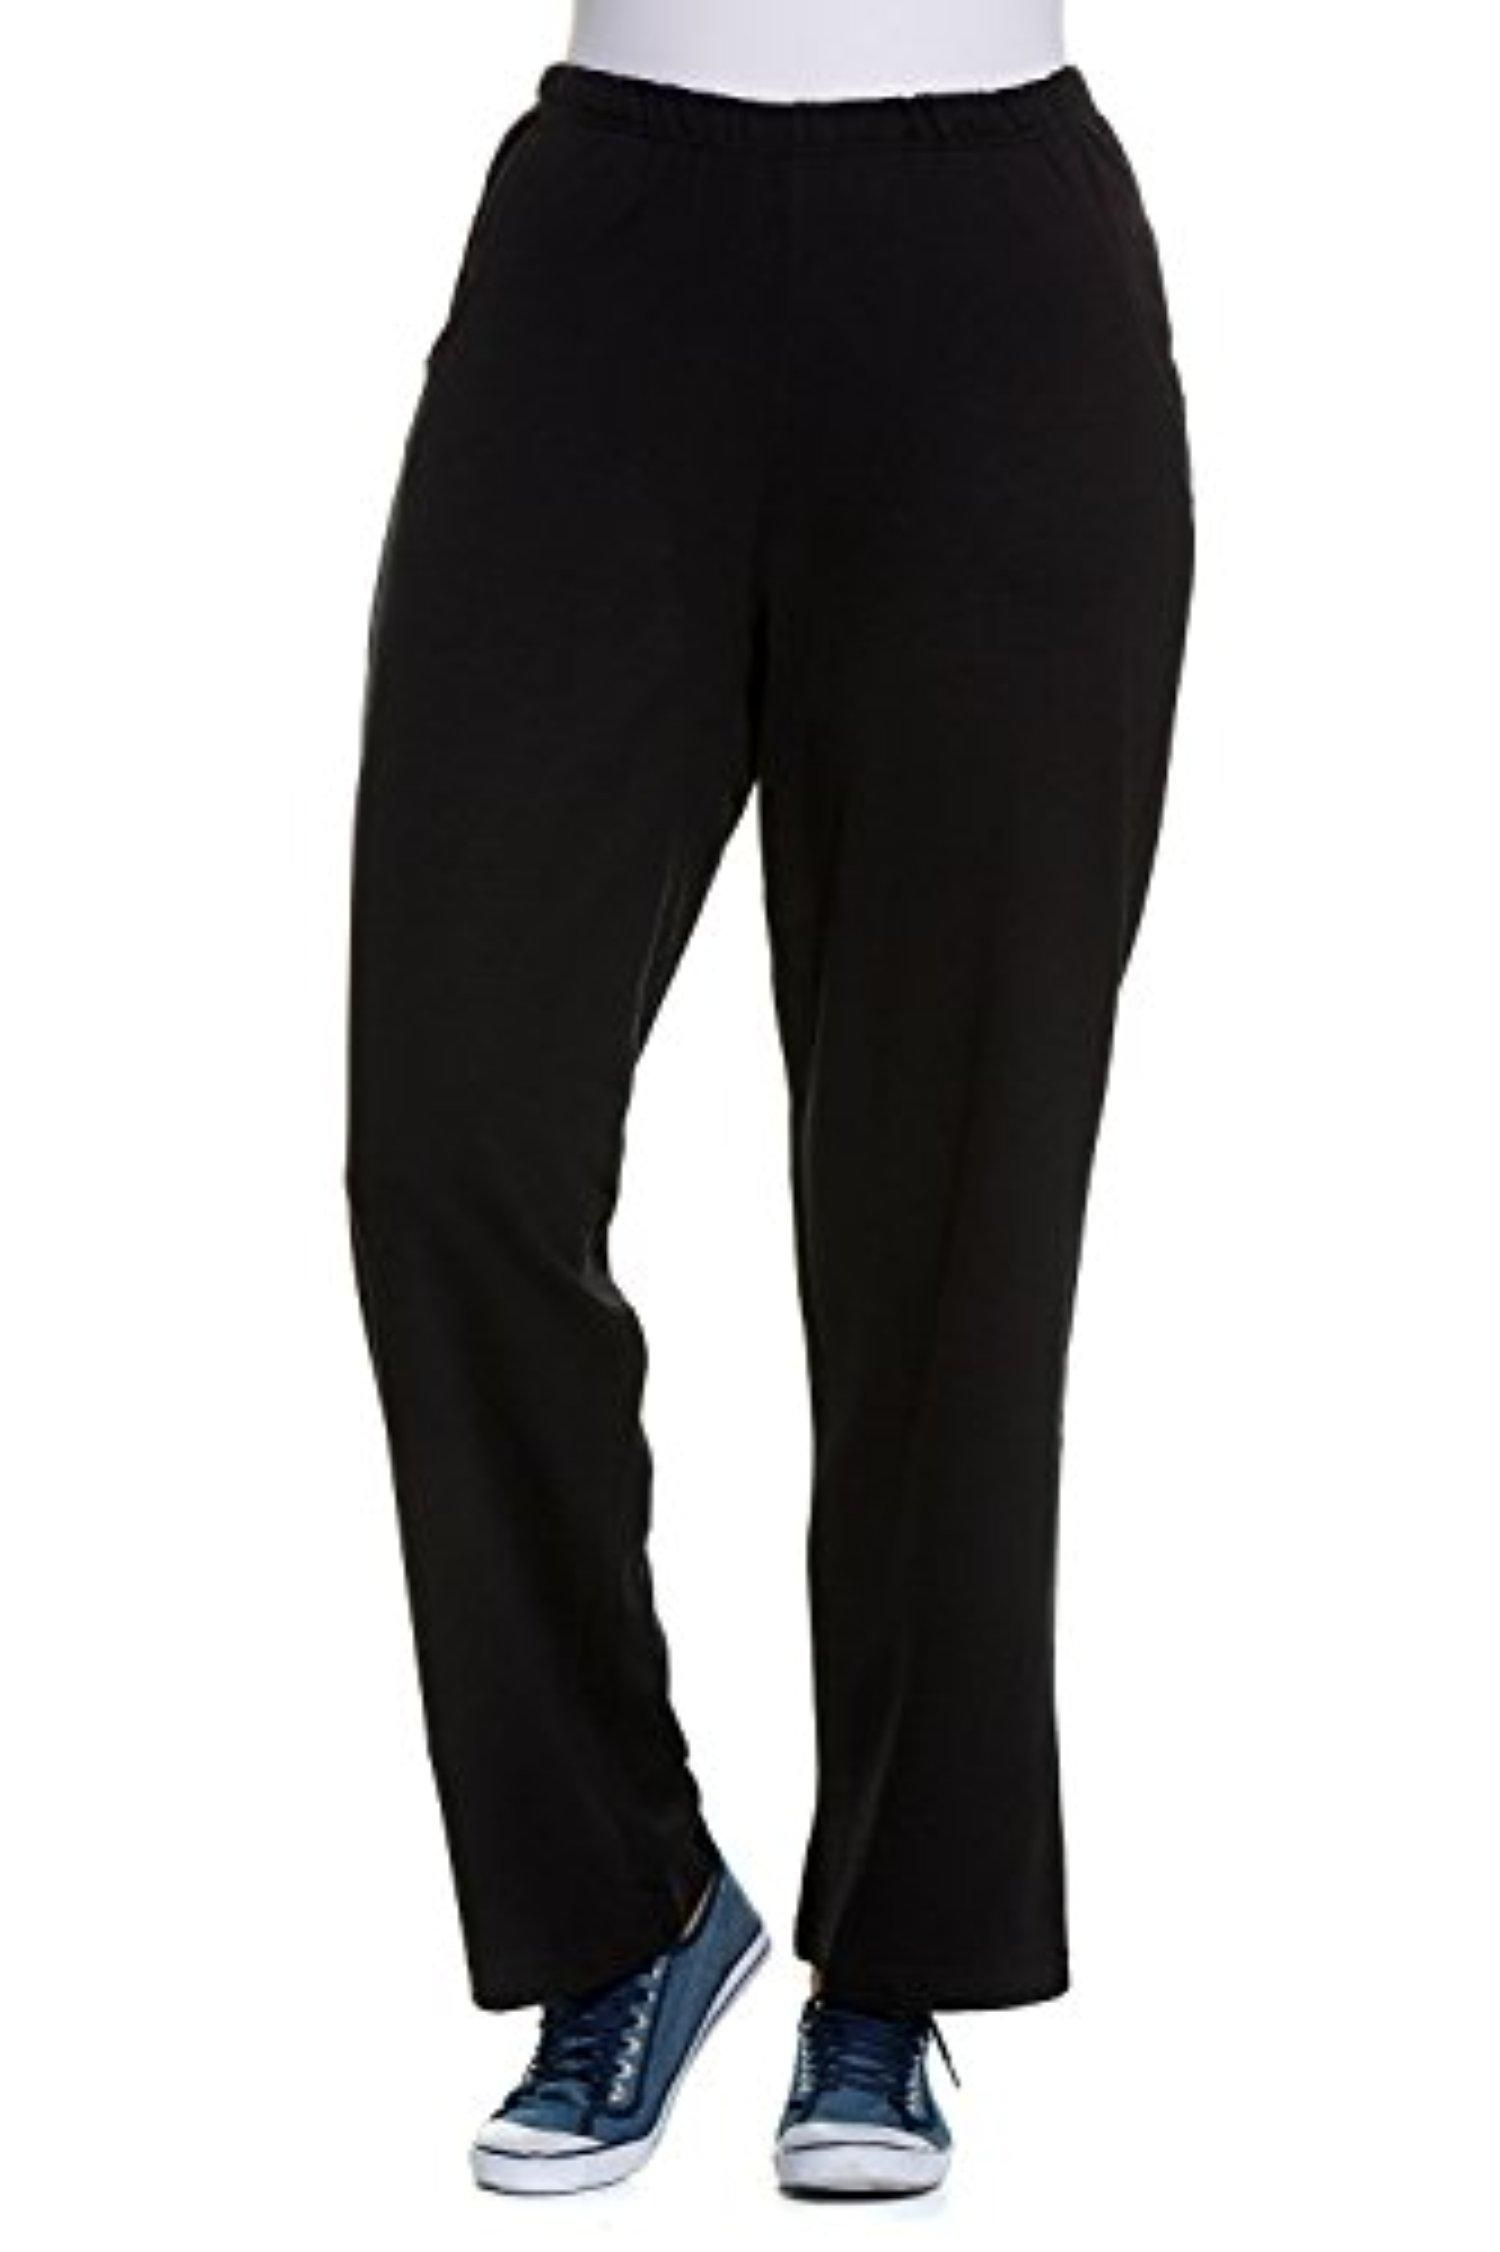 Ulla Popken Women S Plus Size Relaxed Fit All Day Cotton Pants Black 24 26 624781 10 Brought To You By Avarsha Com Cotton Pants Black Pants Pants